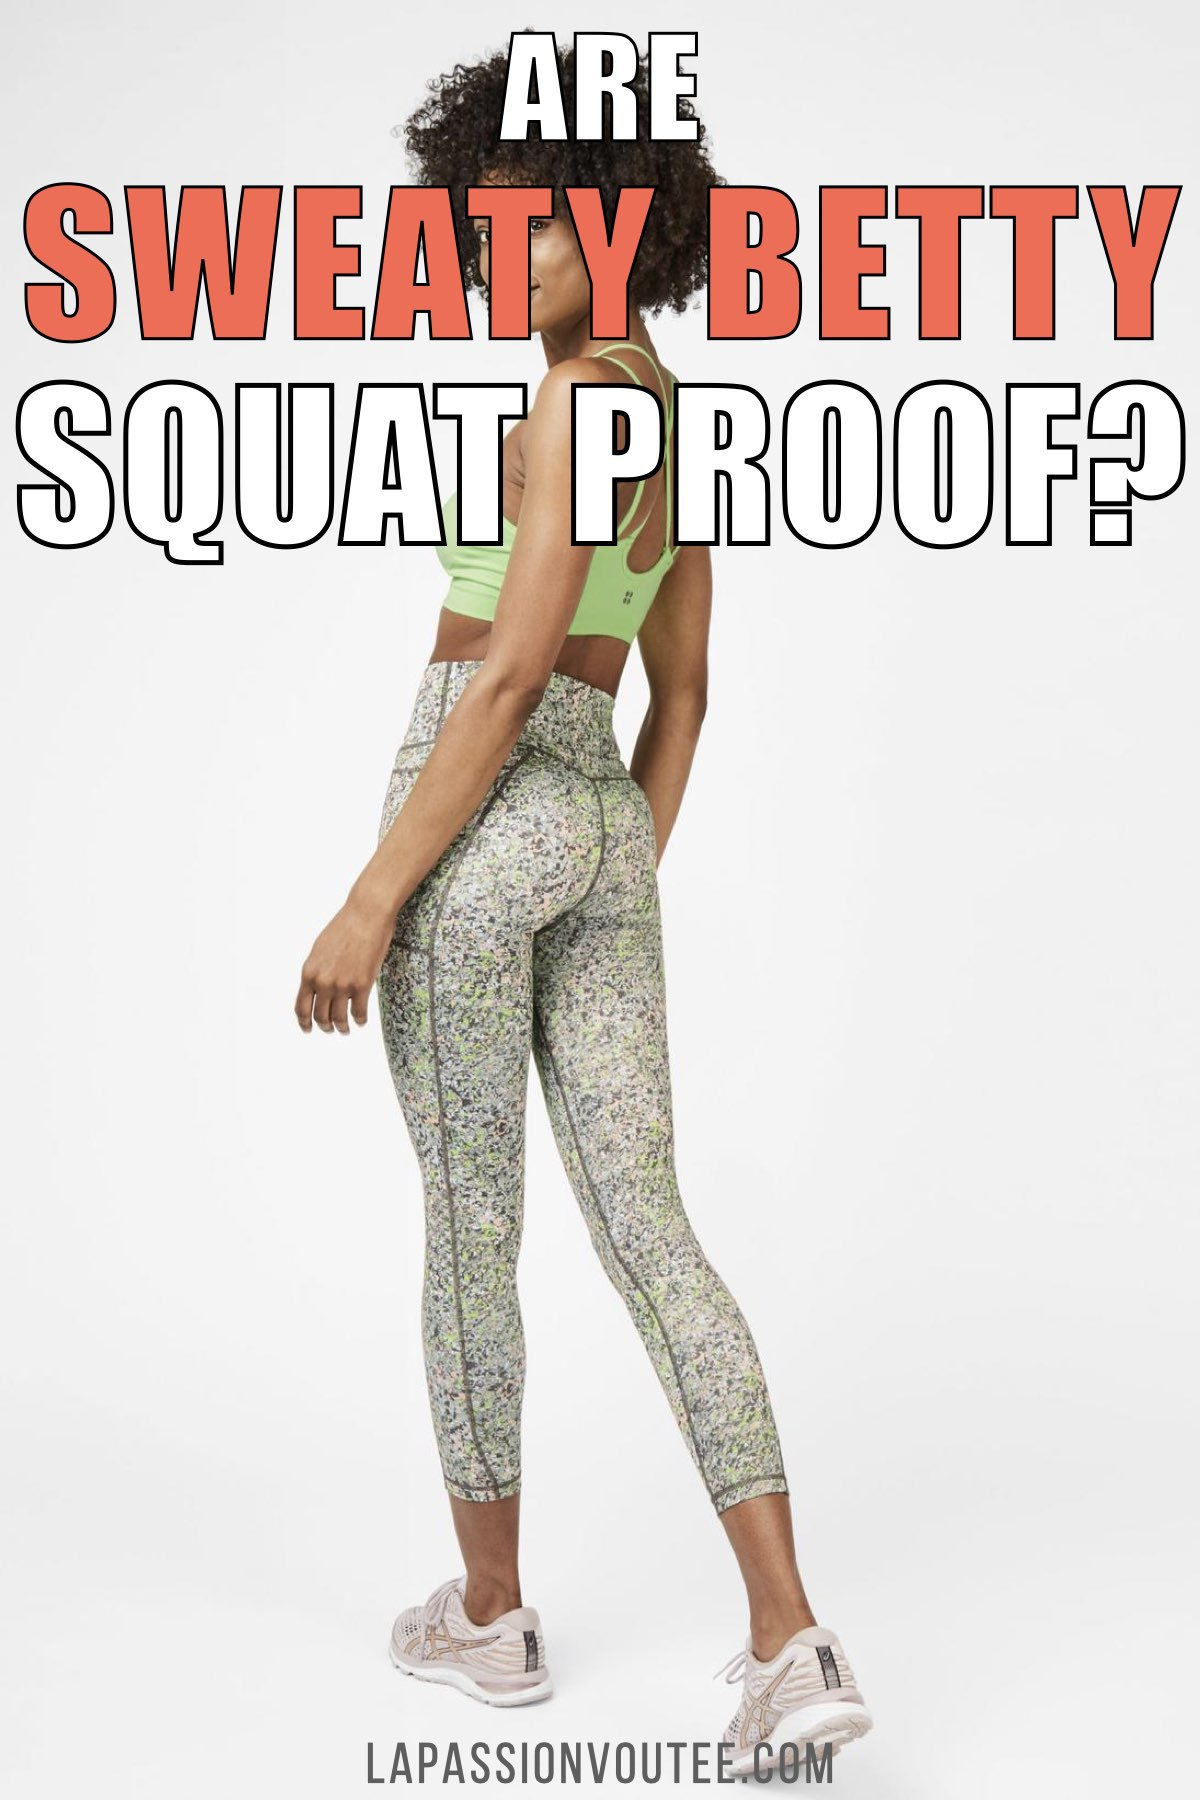 When it comes to leggings that give an effortless bum-sculpting, squat-proof, moisture-wicking features, then you have to try the best Sweaty Betty leggings like the Power Workout Leggings and the Super Sculpt High Waisted Yoga Leggings.